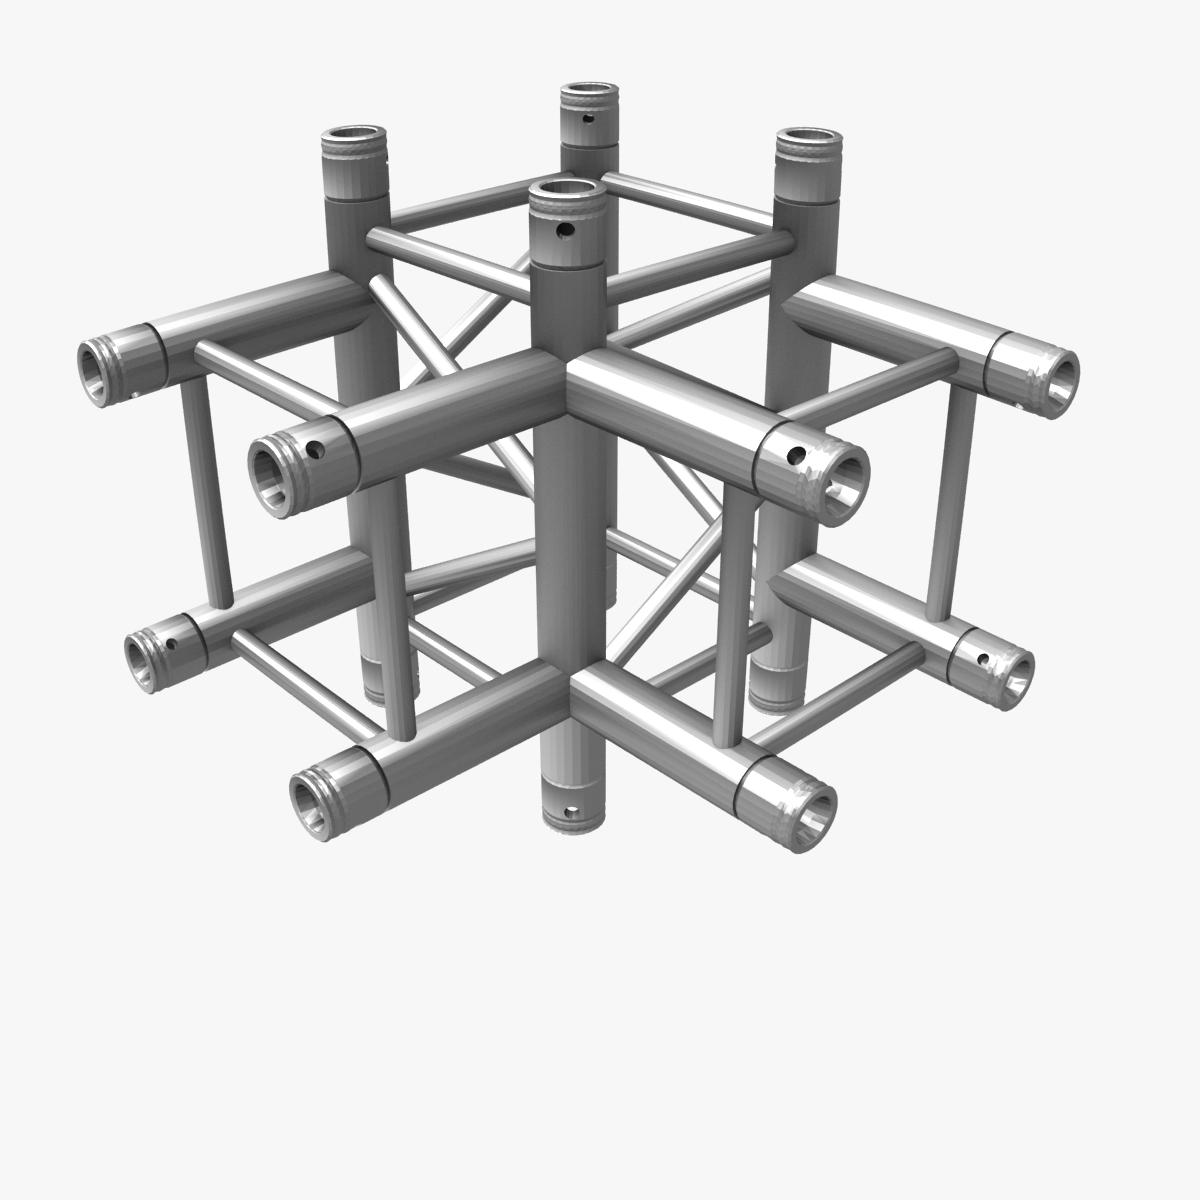 square light trusses (collection 50 modular) 3d model 3ds max dxf fbx c4d dae texture obj 216188